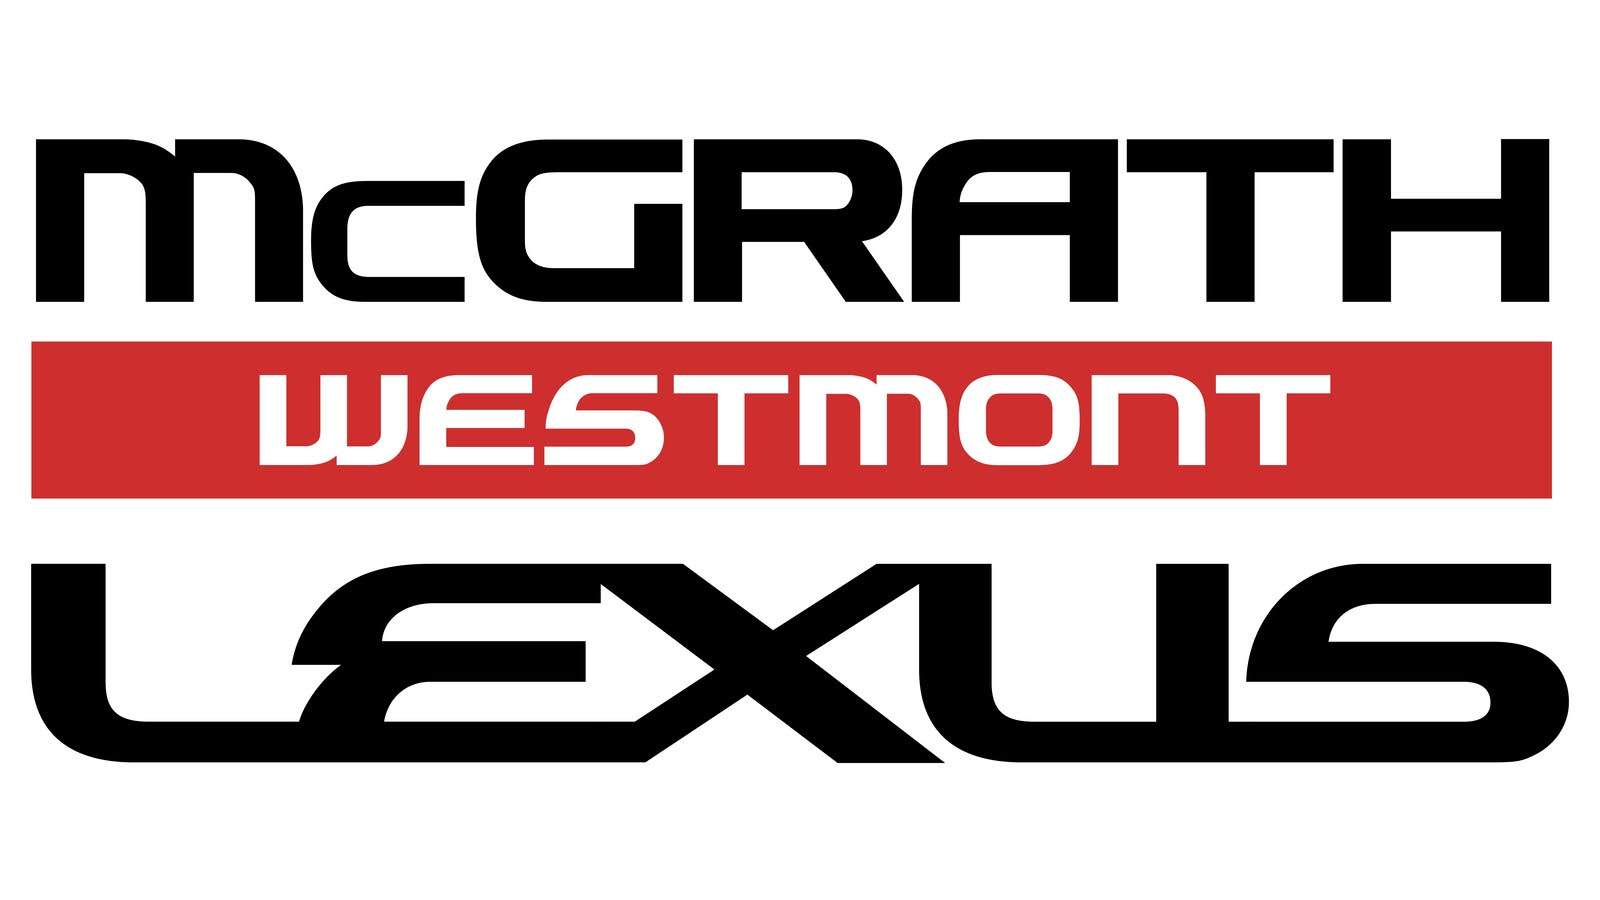 Beautiful McGrath Lexus Of Westmont   Westmont, IL: Read Consumer Reviews, Browse  Used And New Cars For Sale